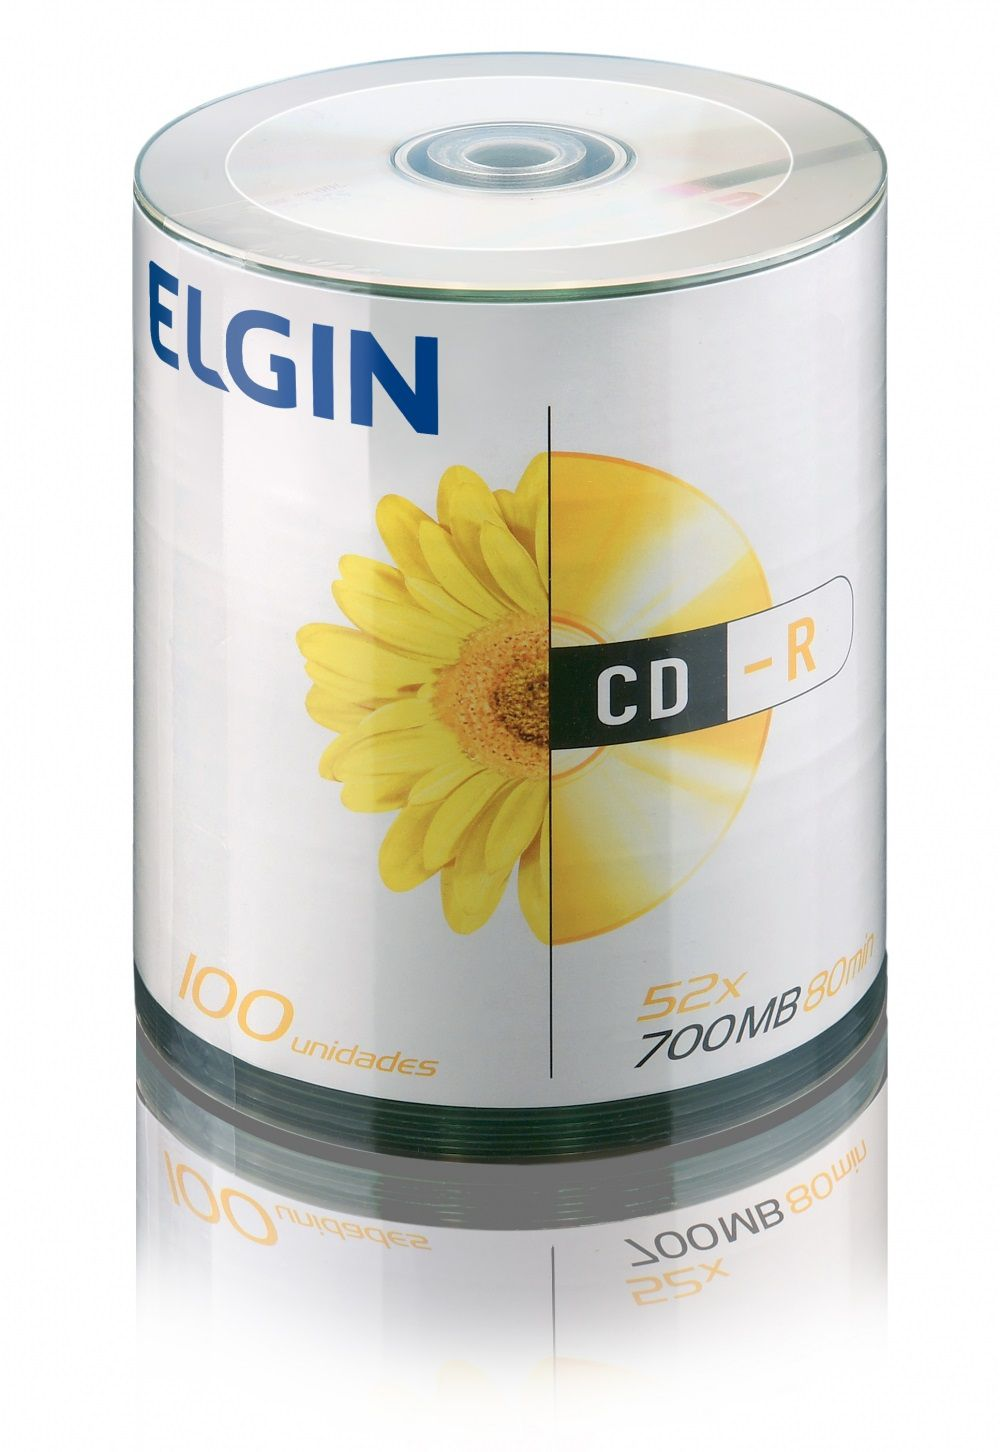 CD-R 100 midias Elgin com logotipo